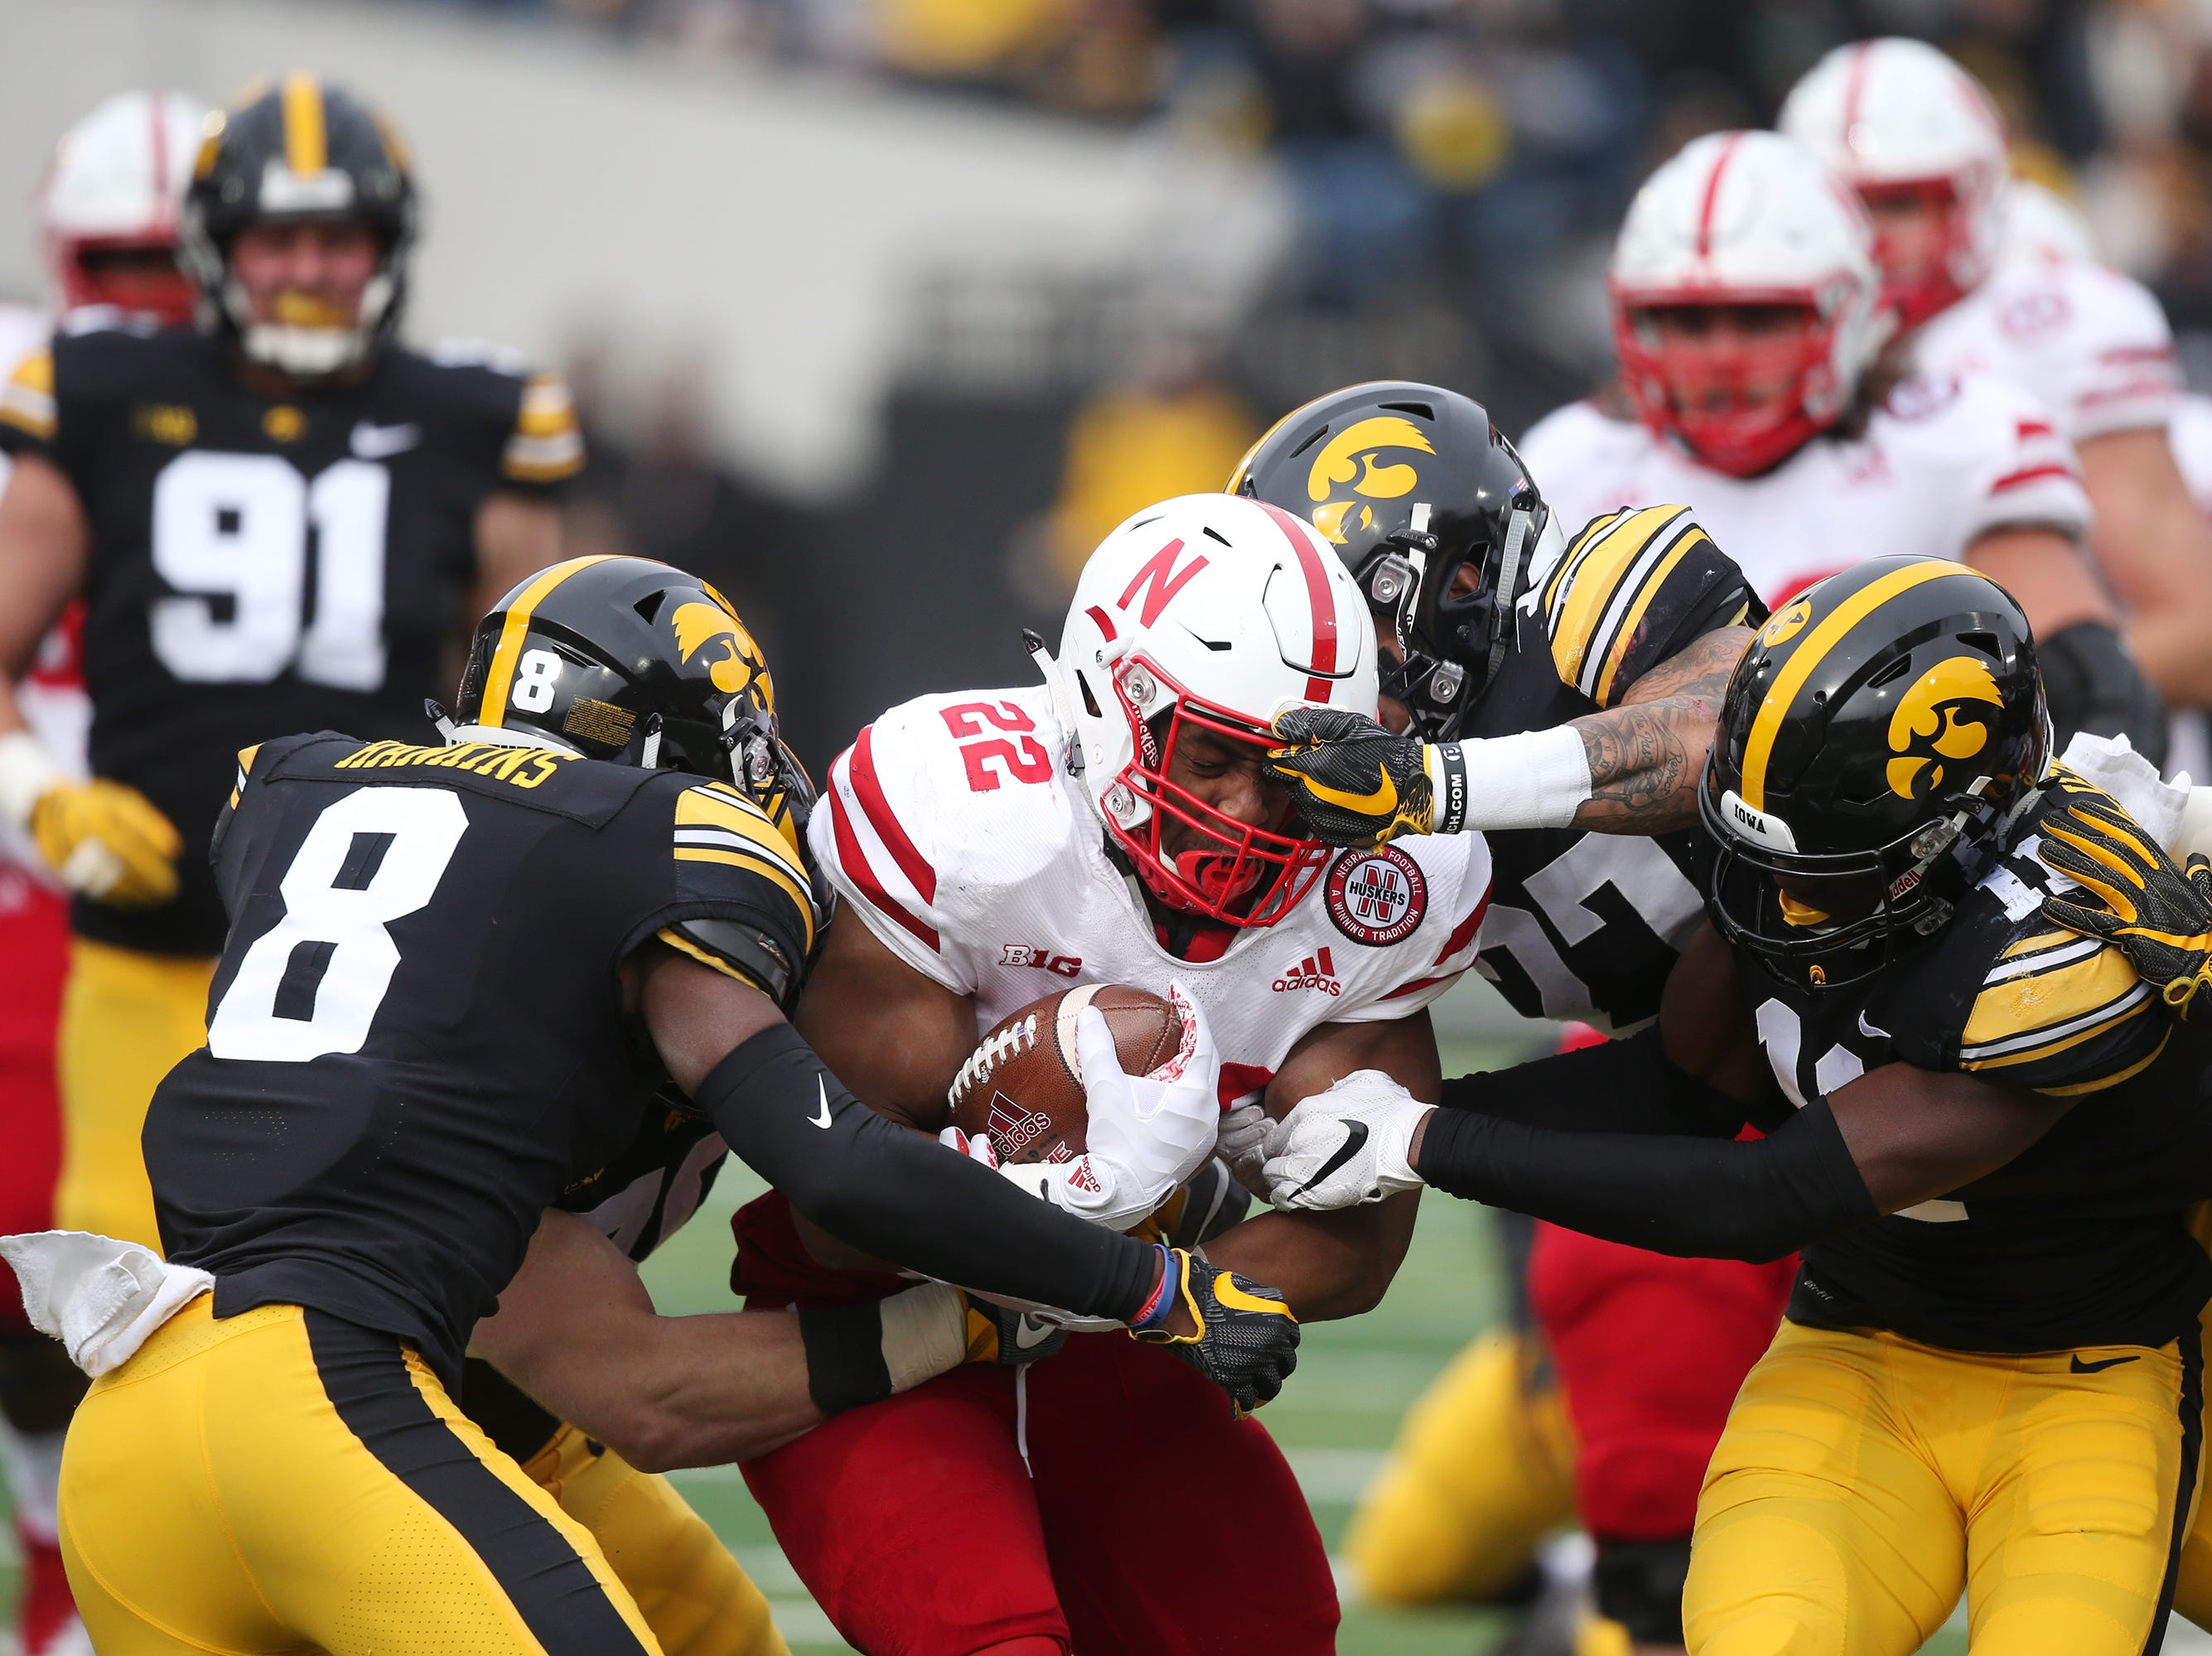 Nebraska's David Ozigbo is brought down by Iowa's Matt Hankins (8) Amani Hooker (27) and Michael Ojemudia (11) during the senior day match-up between the Iowa Hawkeyes and the Nebraska Cornhuskers on Friday, Nov. 23, 2018, at Kinnick Stadium, in Iowa City.